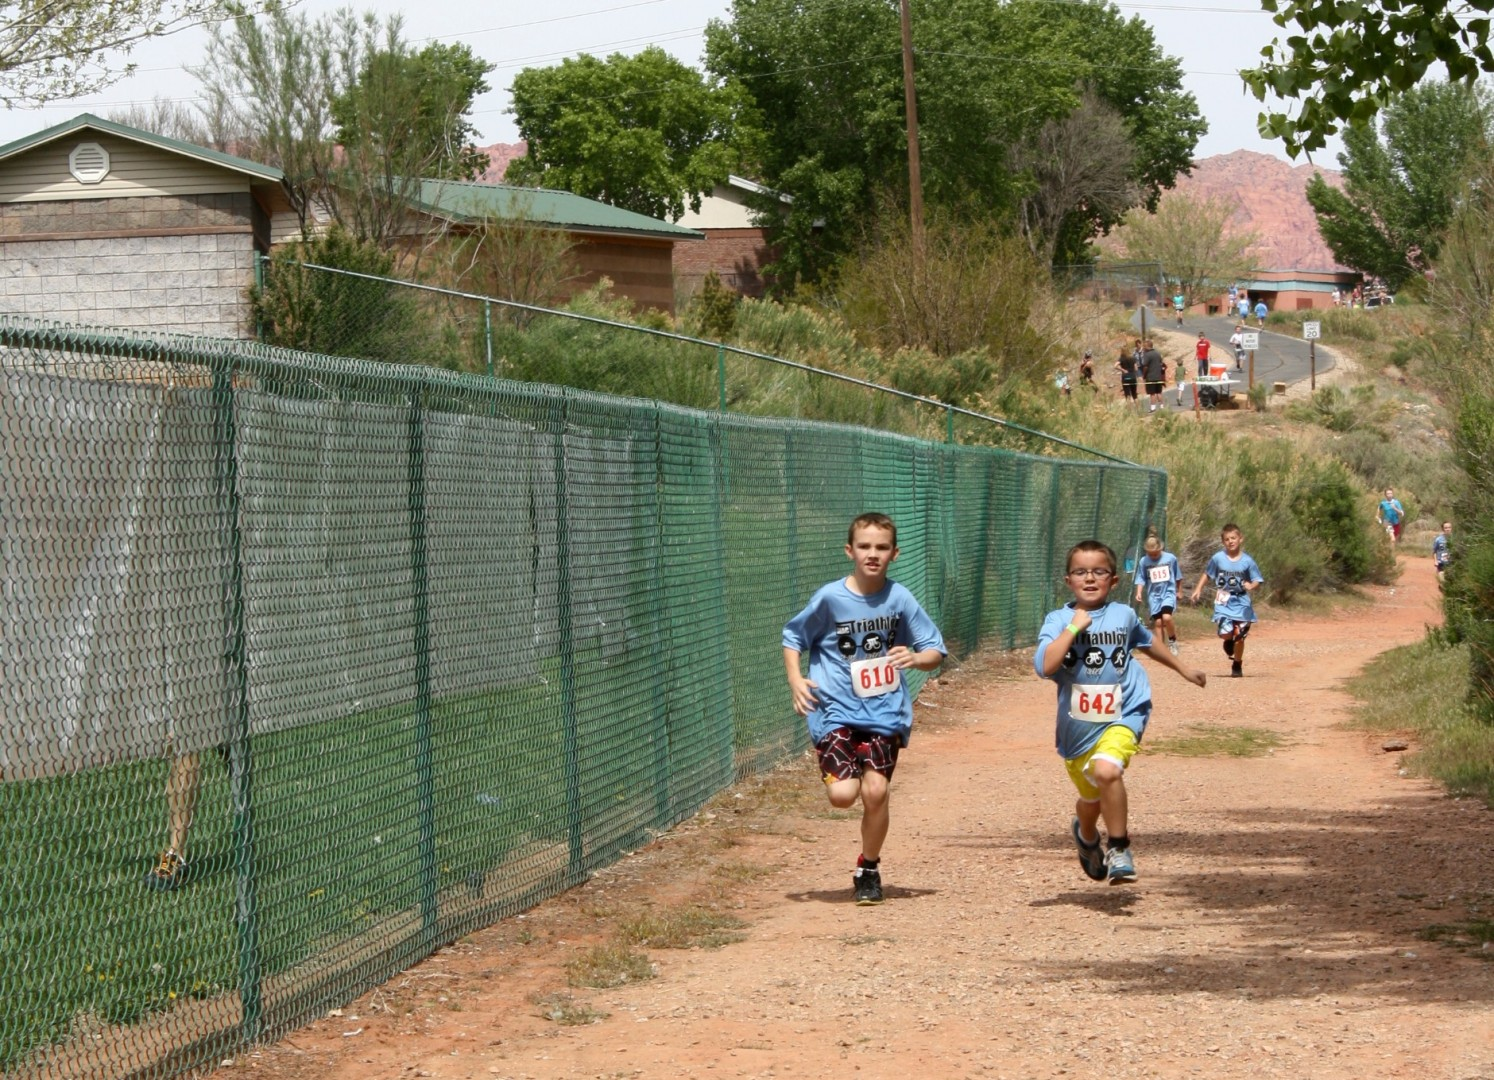 Anyone Can Do These Shac Tuff Kids Triathlons With Solo Team Family Options St George News